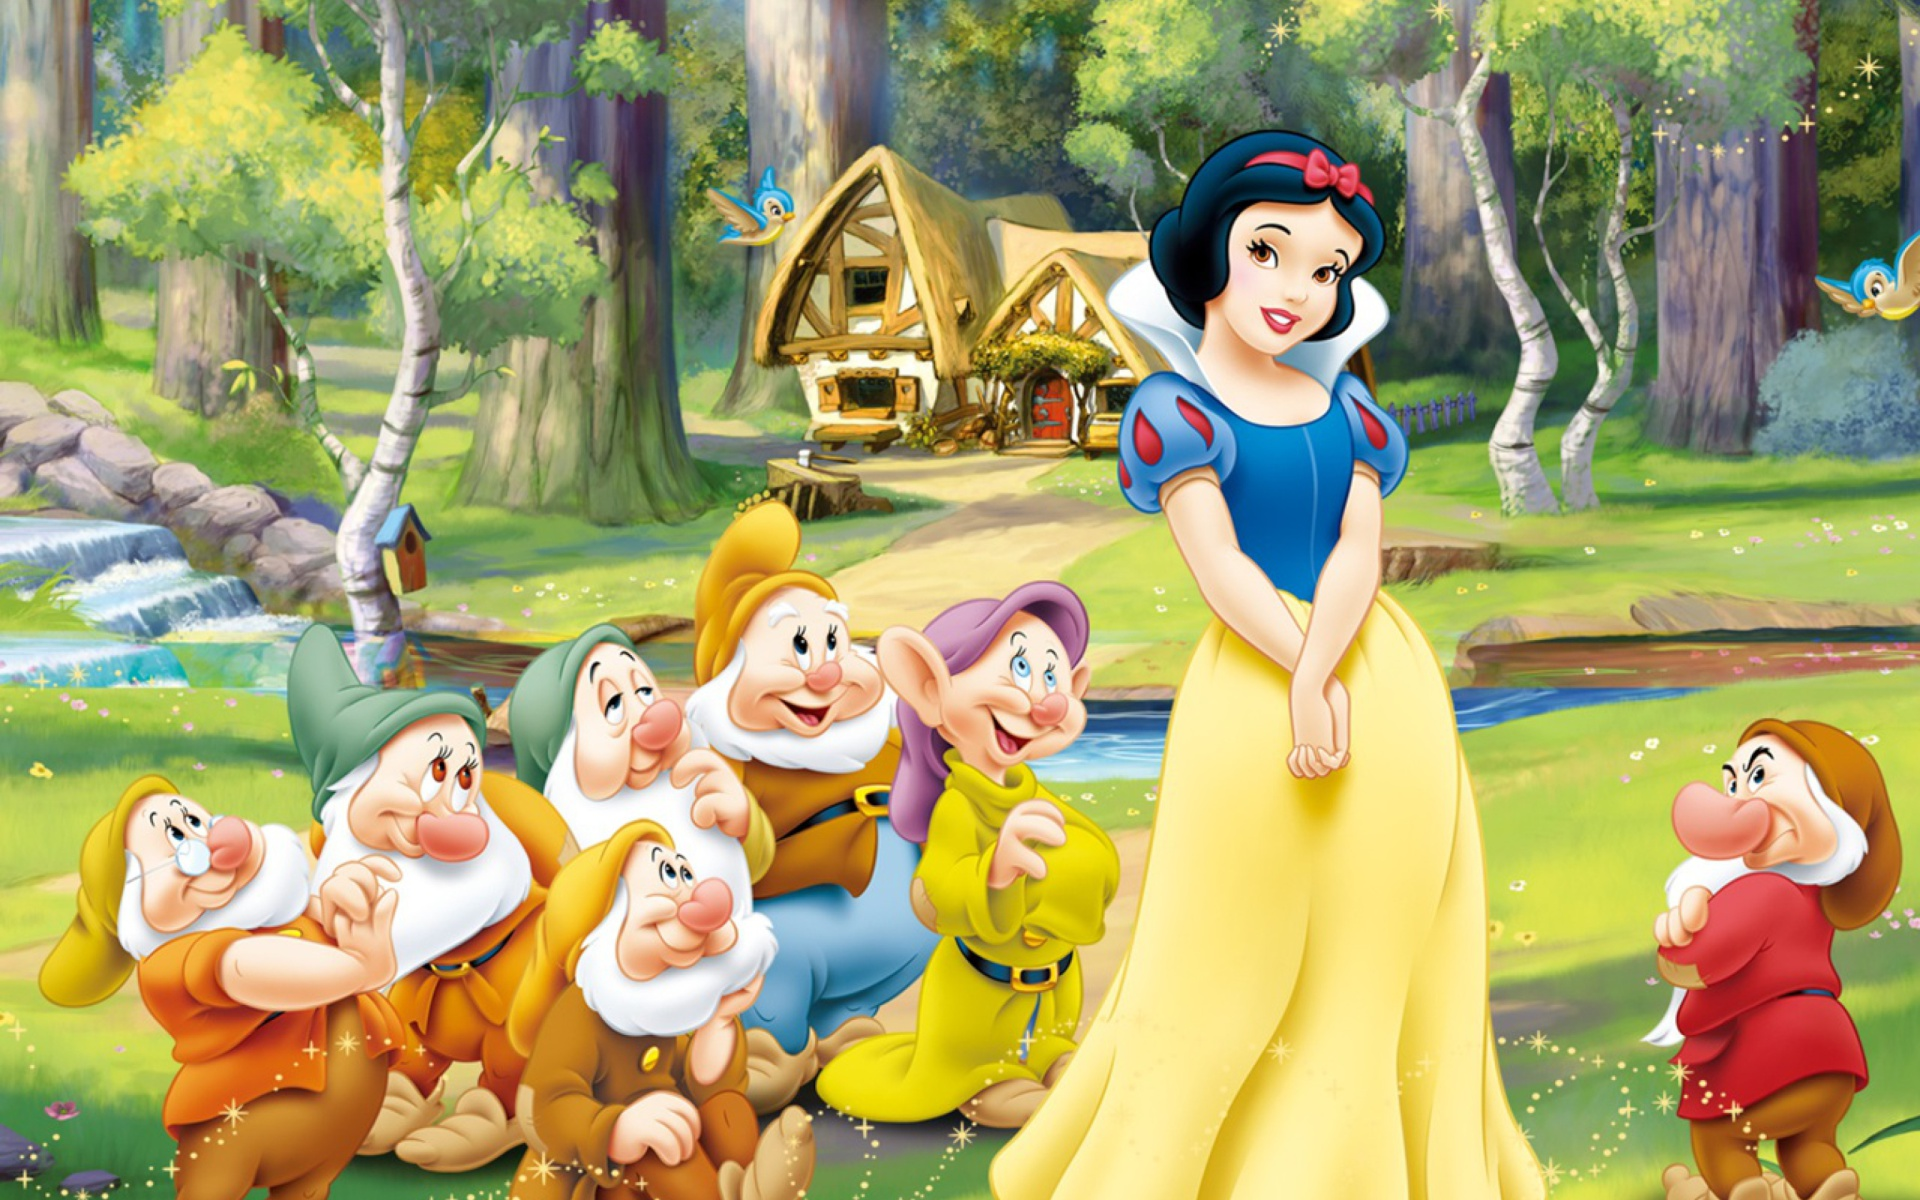 snow-white-and-the-seven-dwarfs-1920x1200